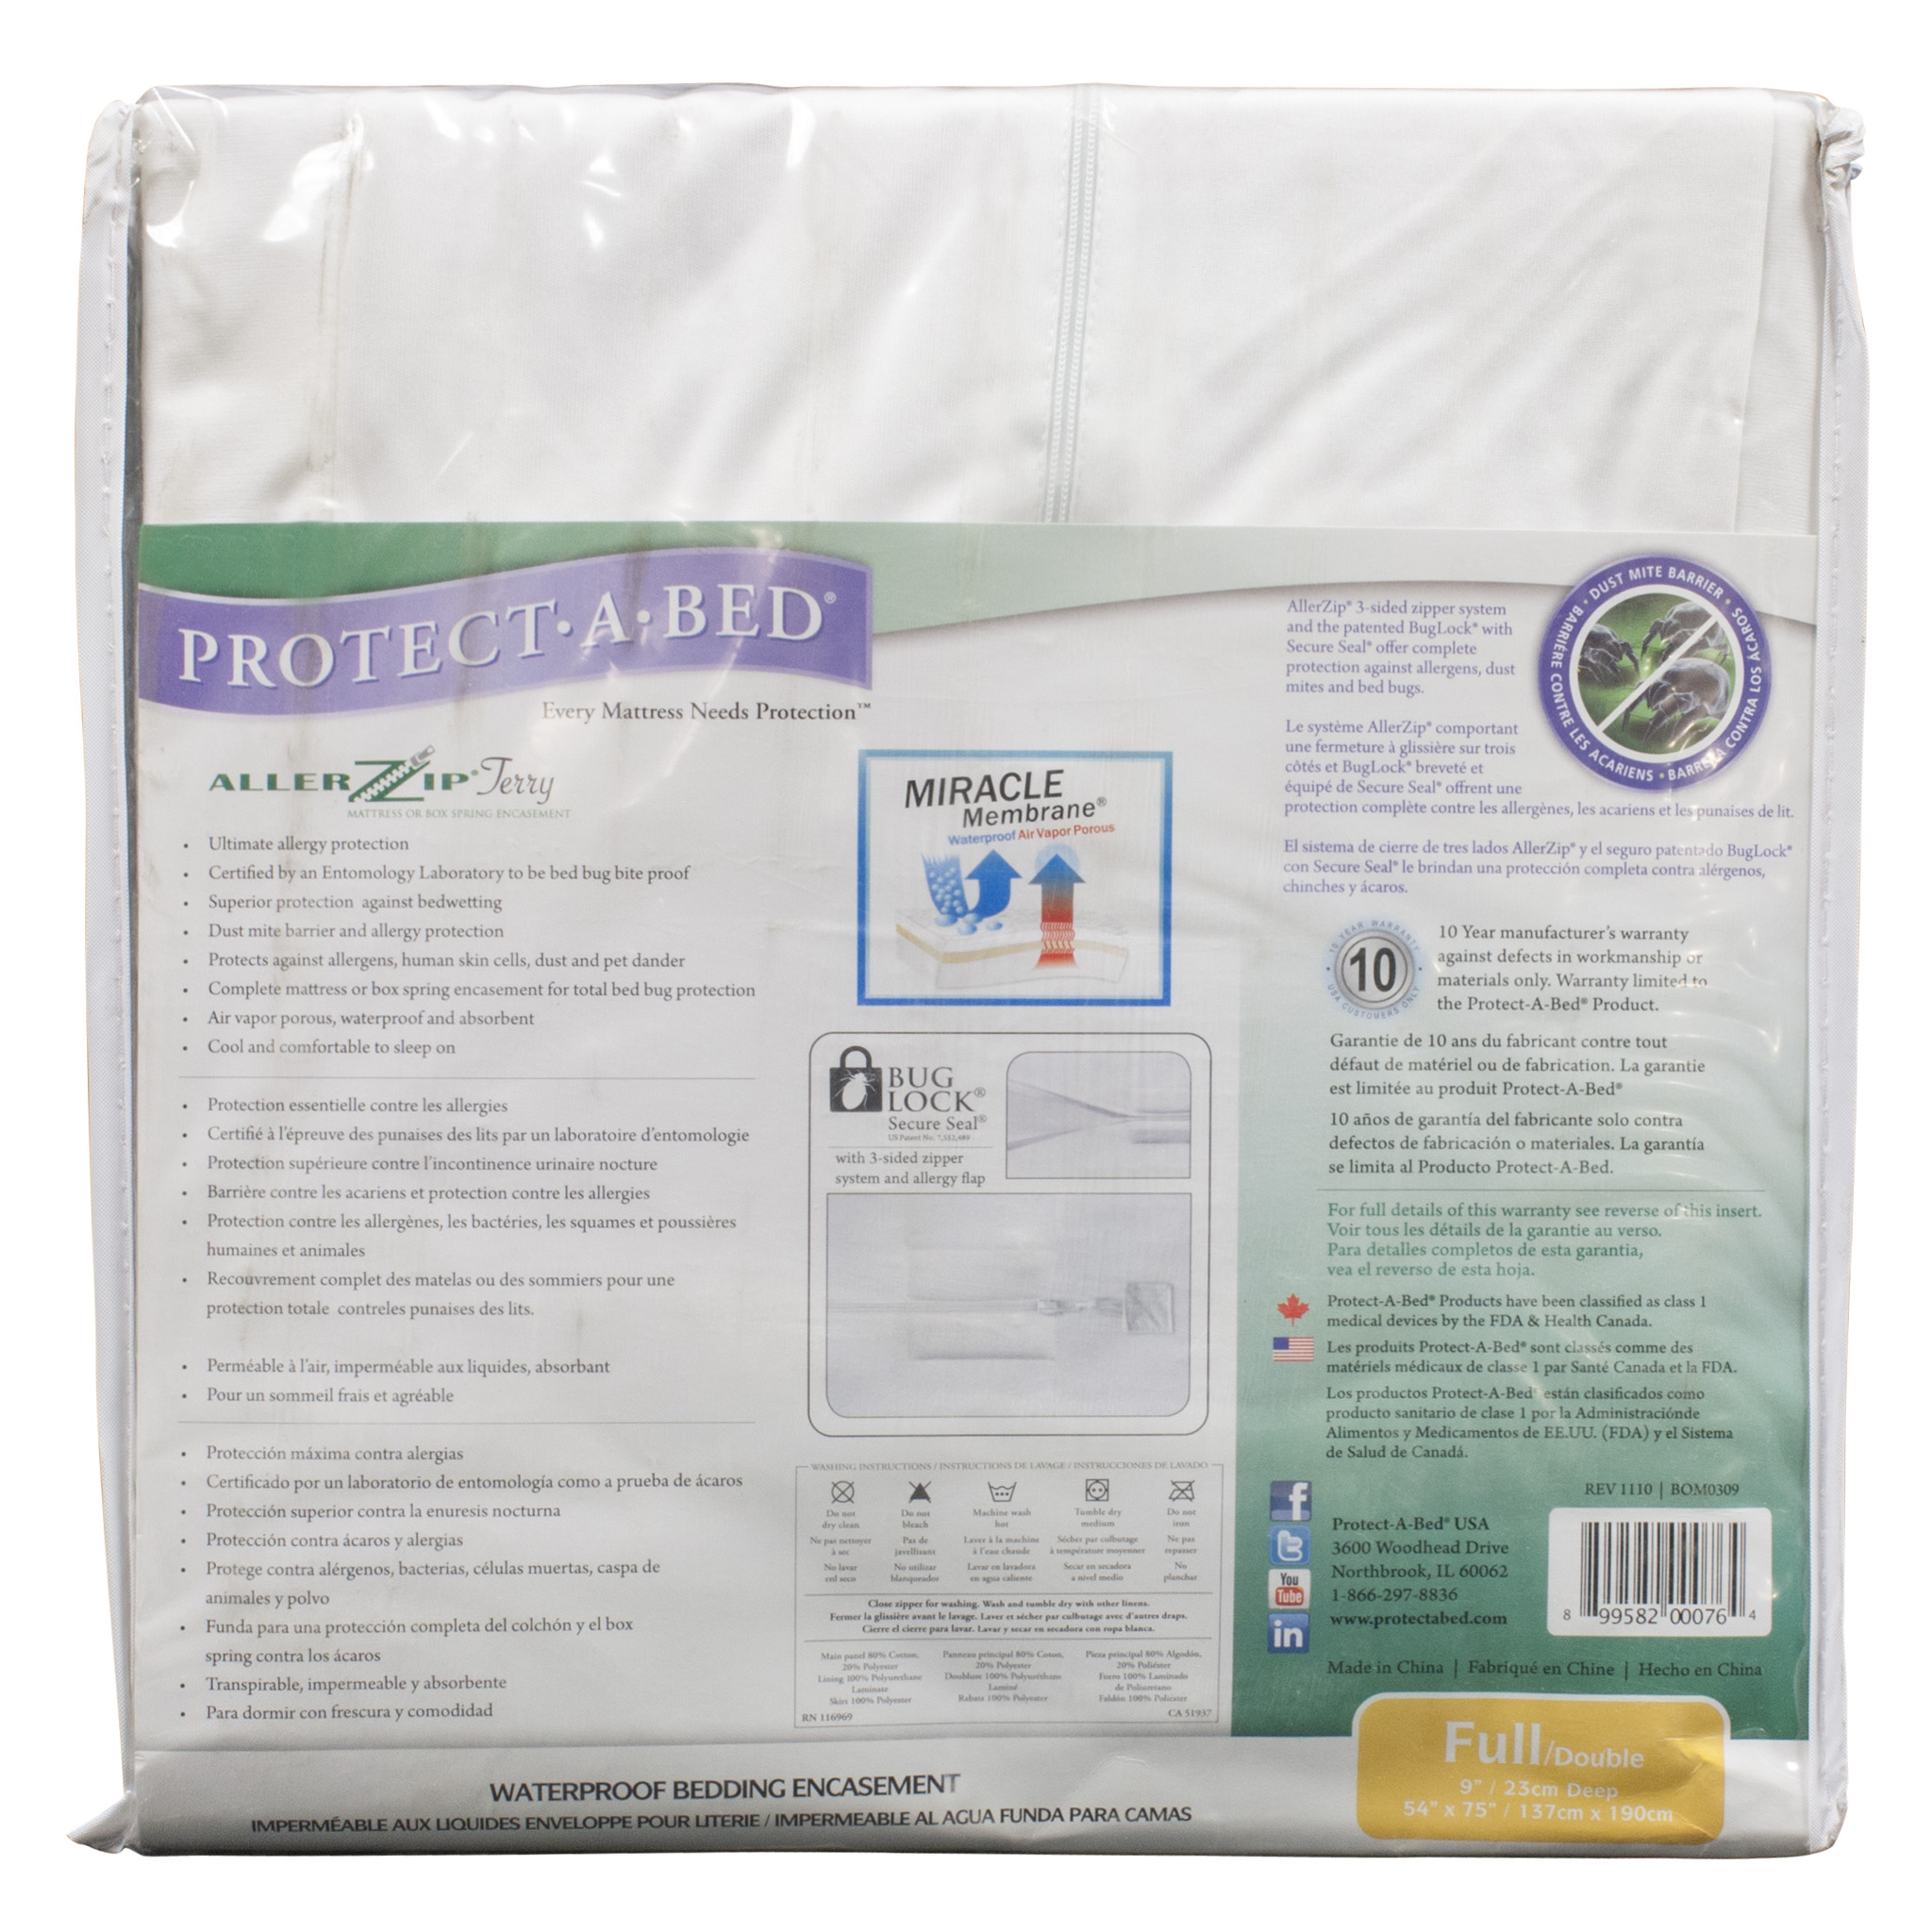 Bed Bugs Mattress Cover Protect A Bed Allerzip Bed Bug Mattress Cover Full